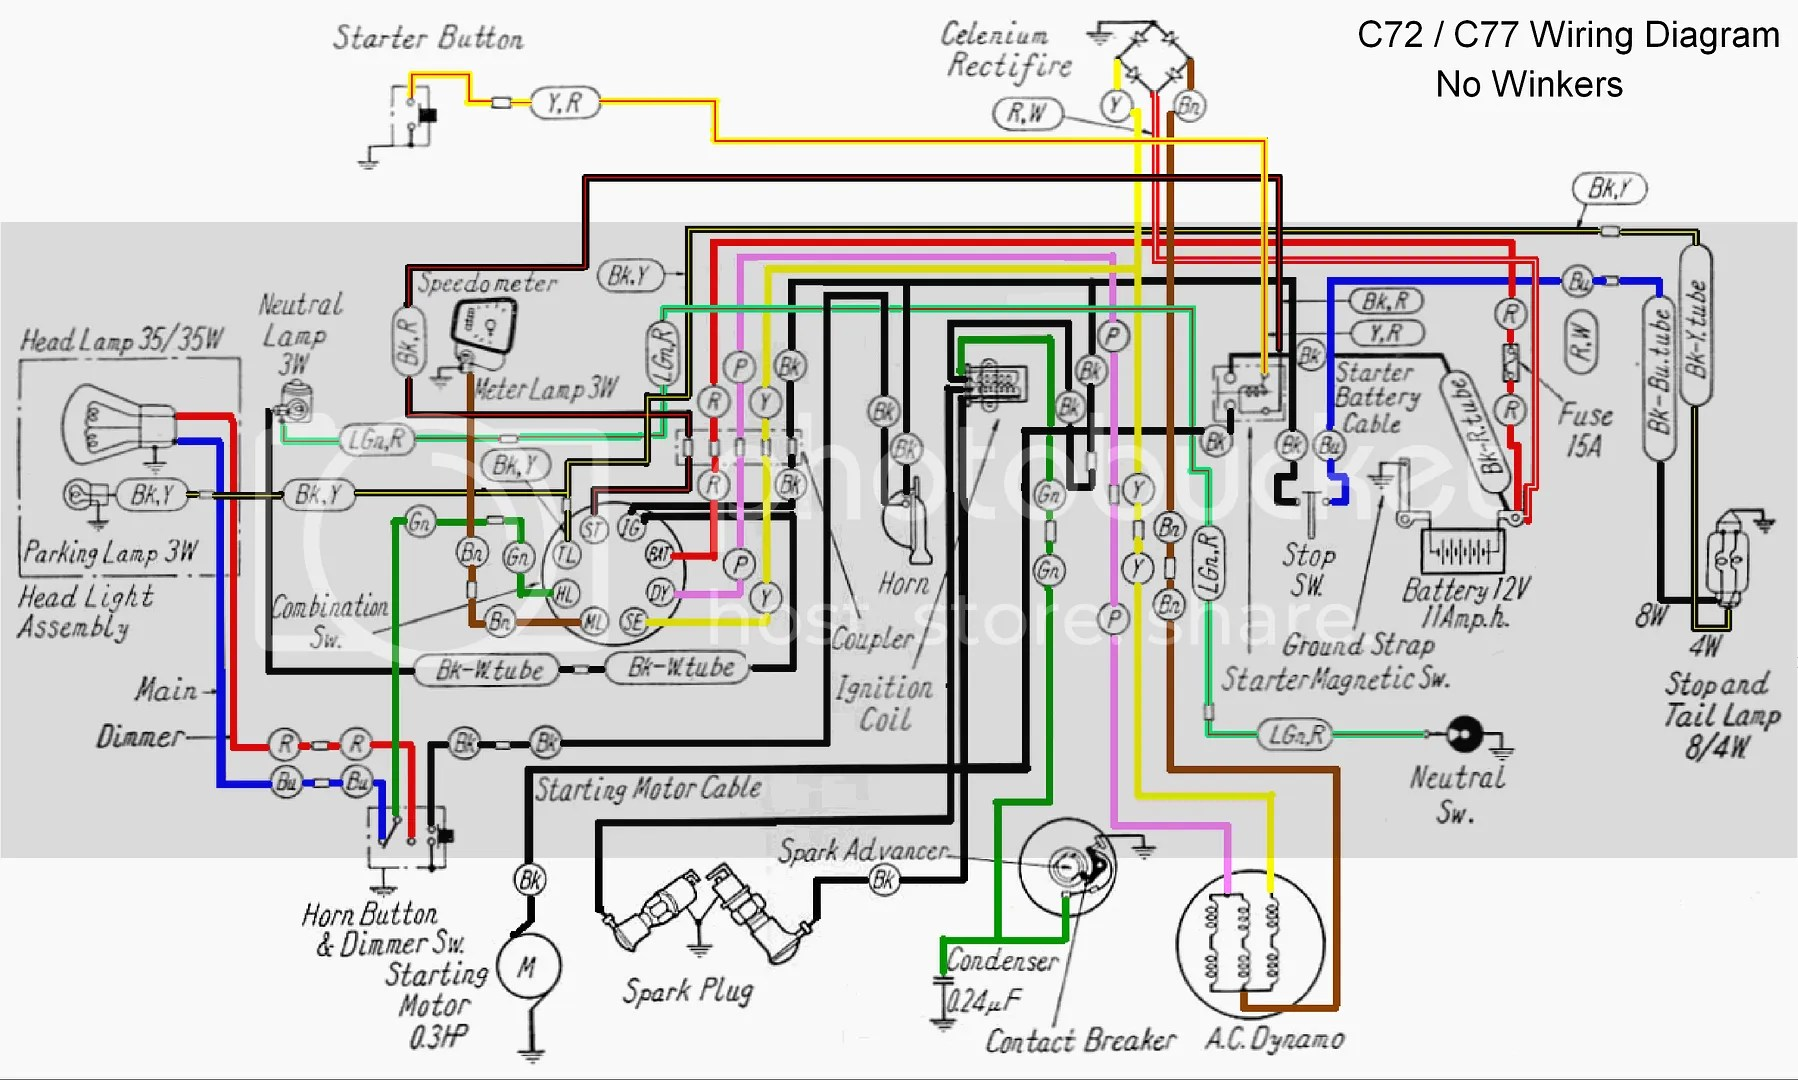 medium resolution of honda305 com forum view topic ca77 wiring diagram with andi was goofing off at work one